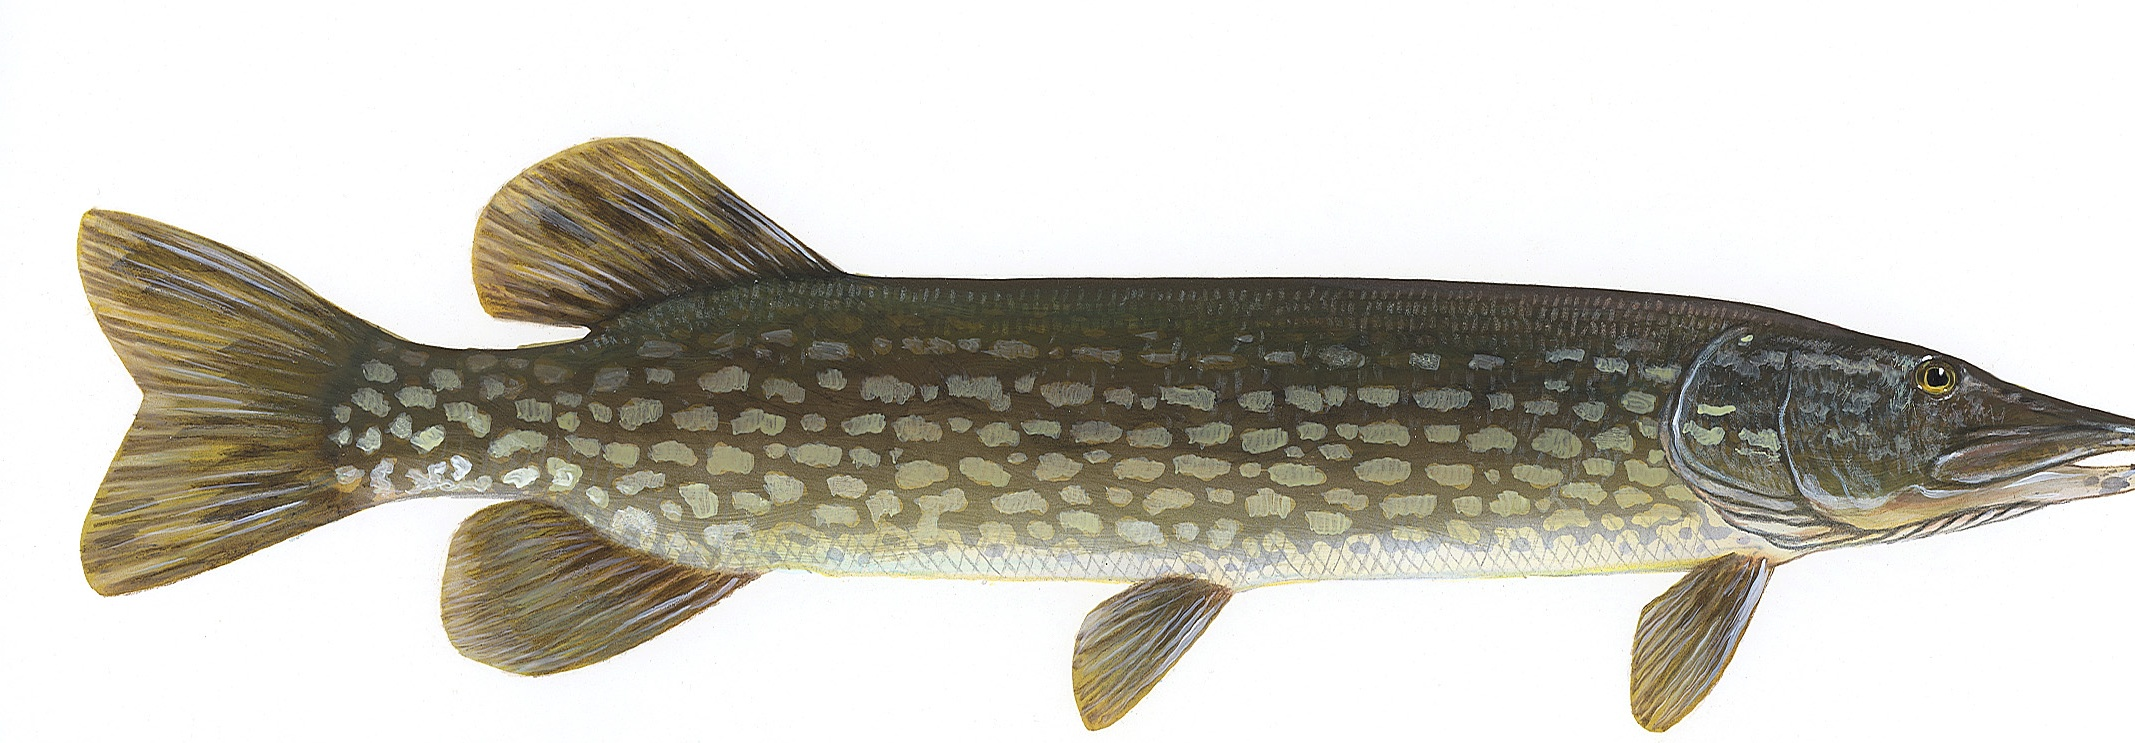 Northern pike fish pictures on animal picture society for Northern pike fish